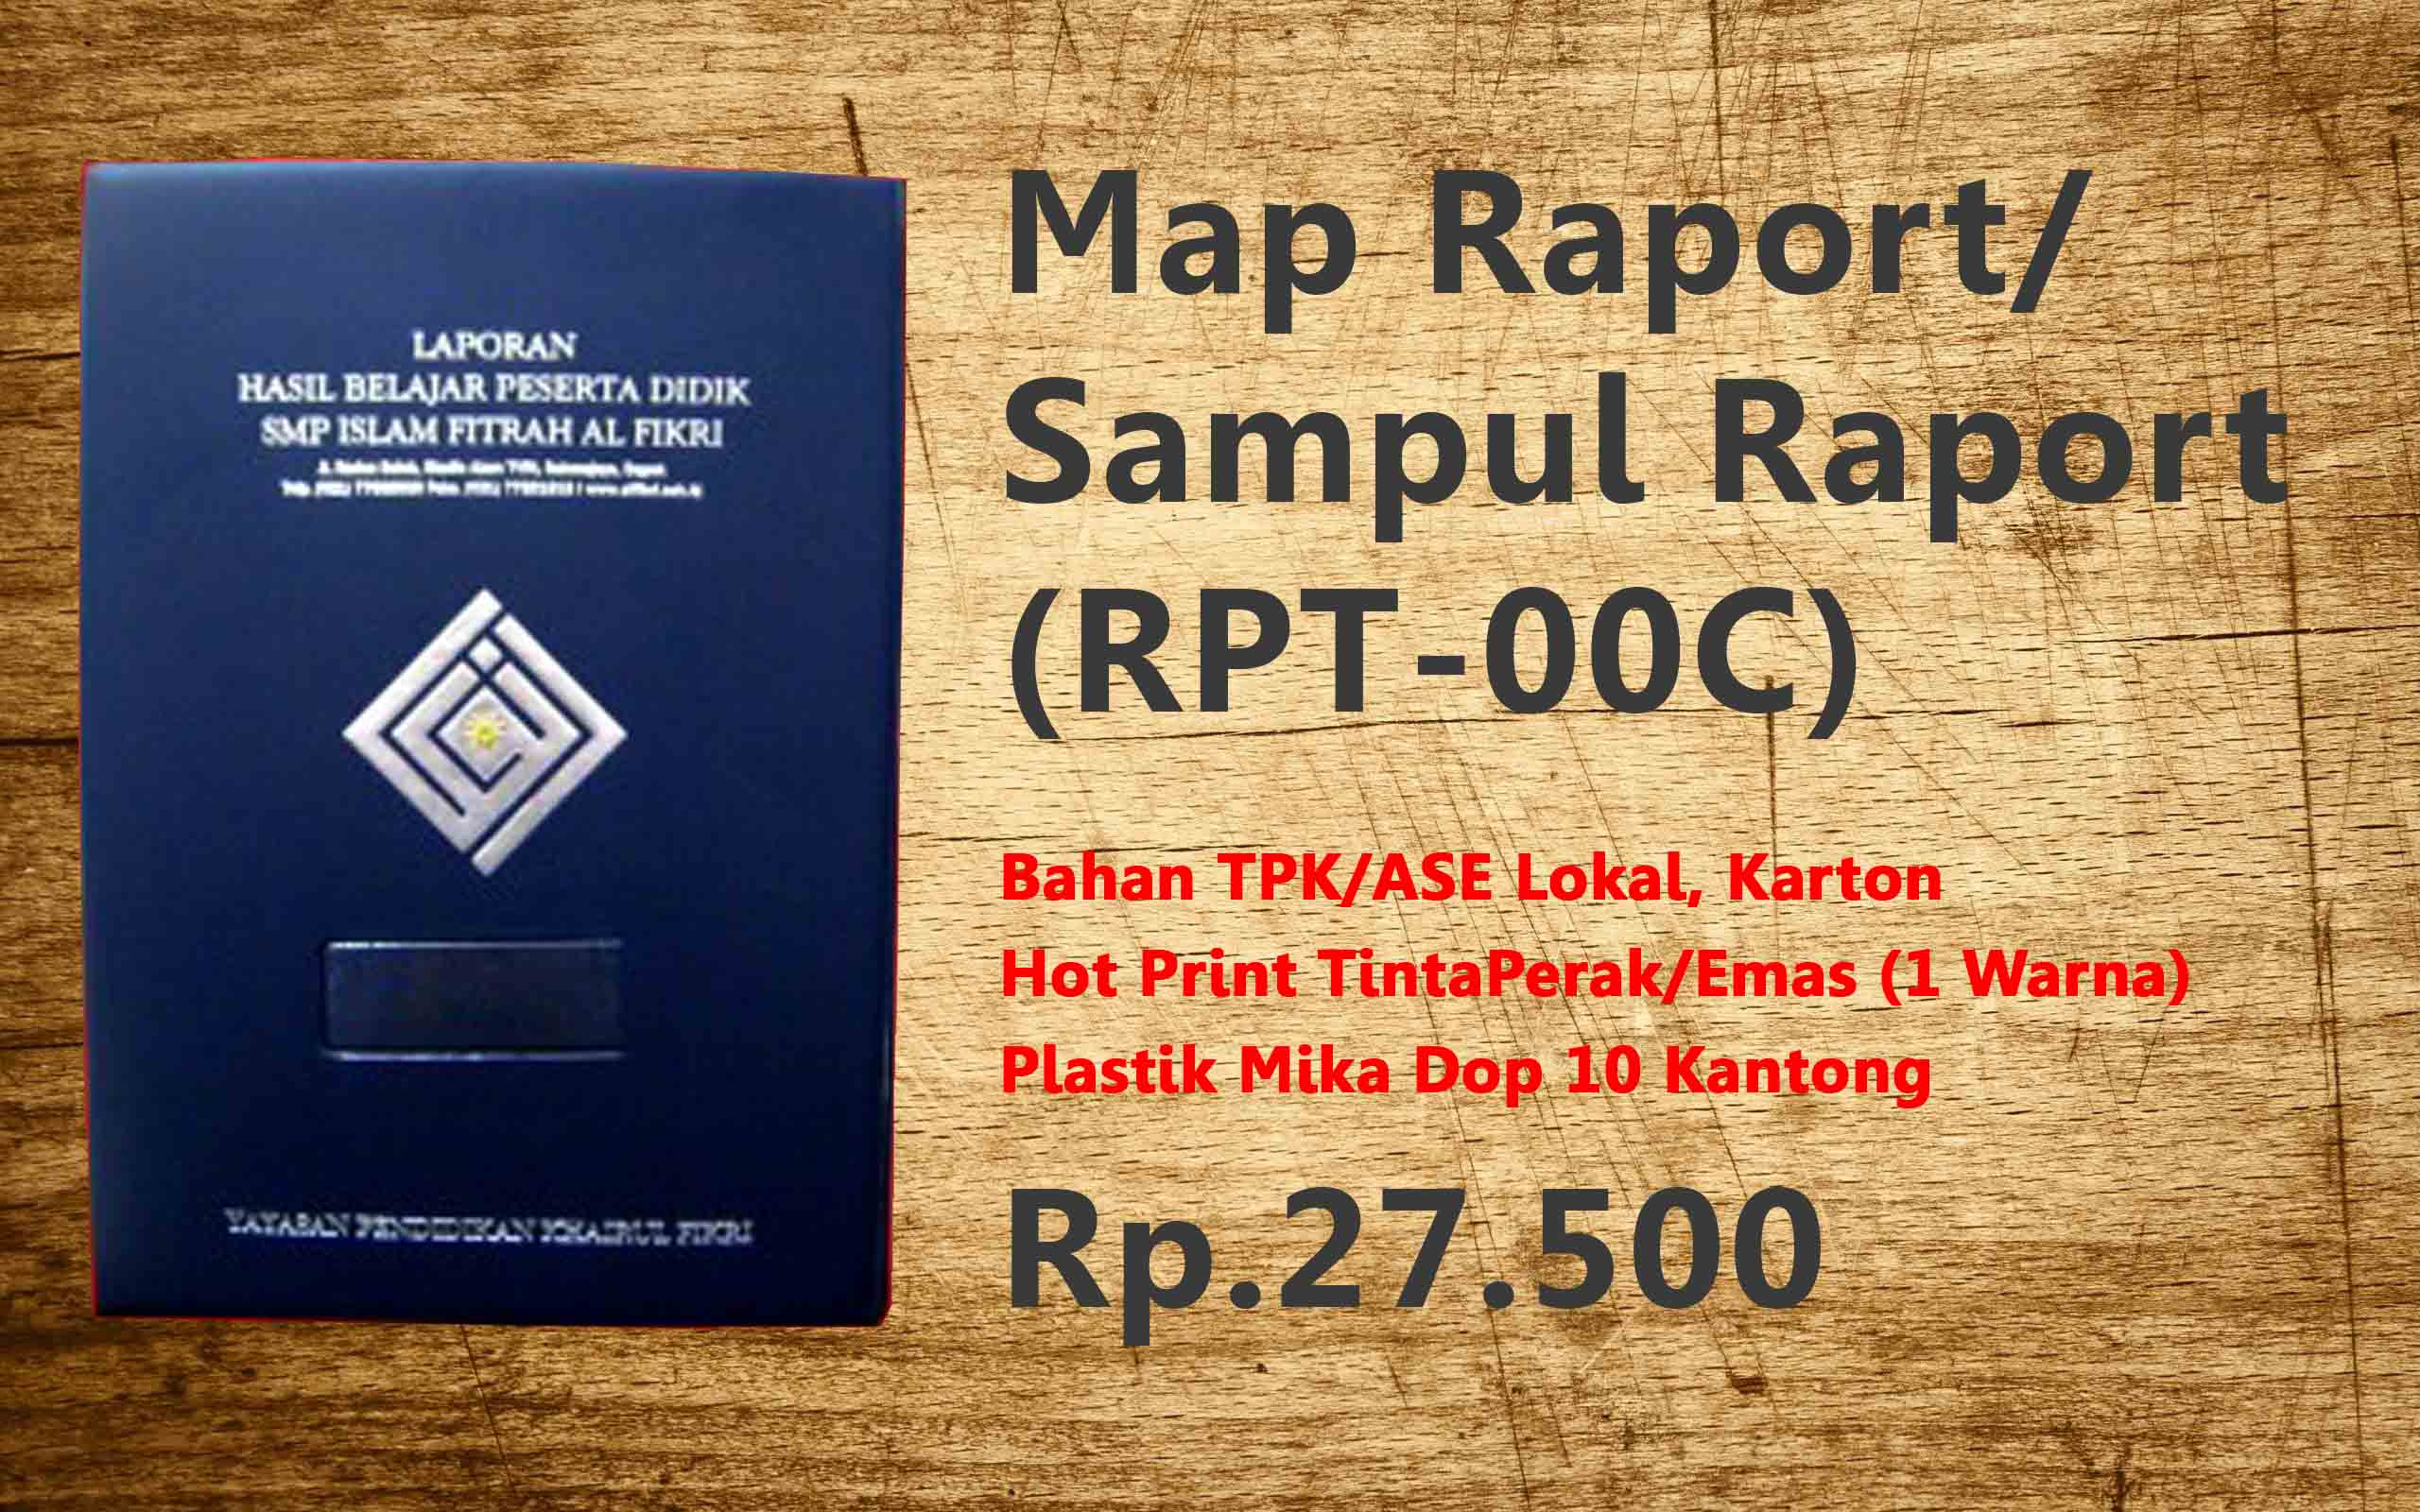 Map Raport/ Sampul Raport (RPT-00C)